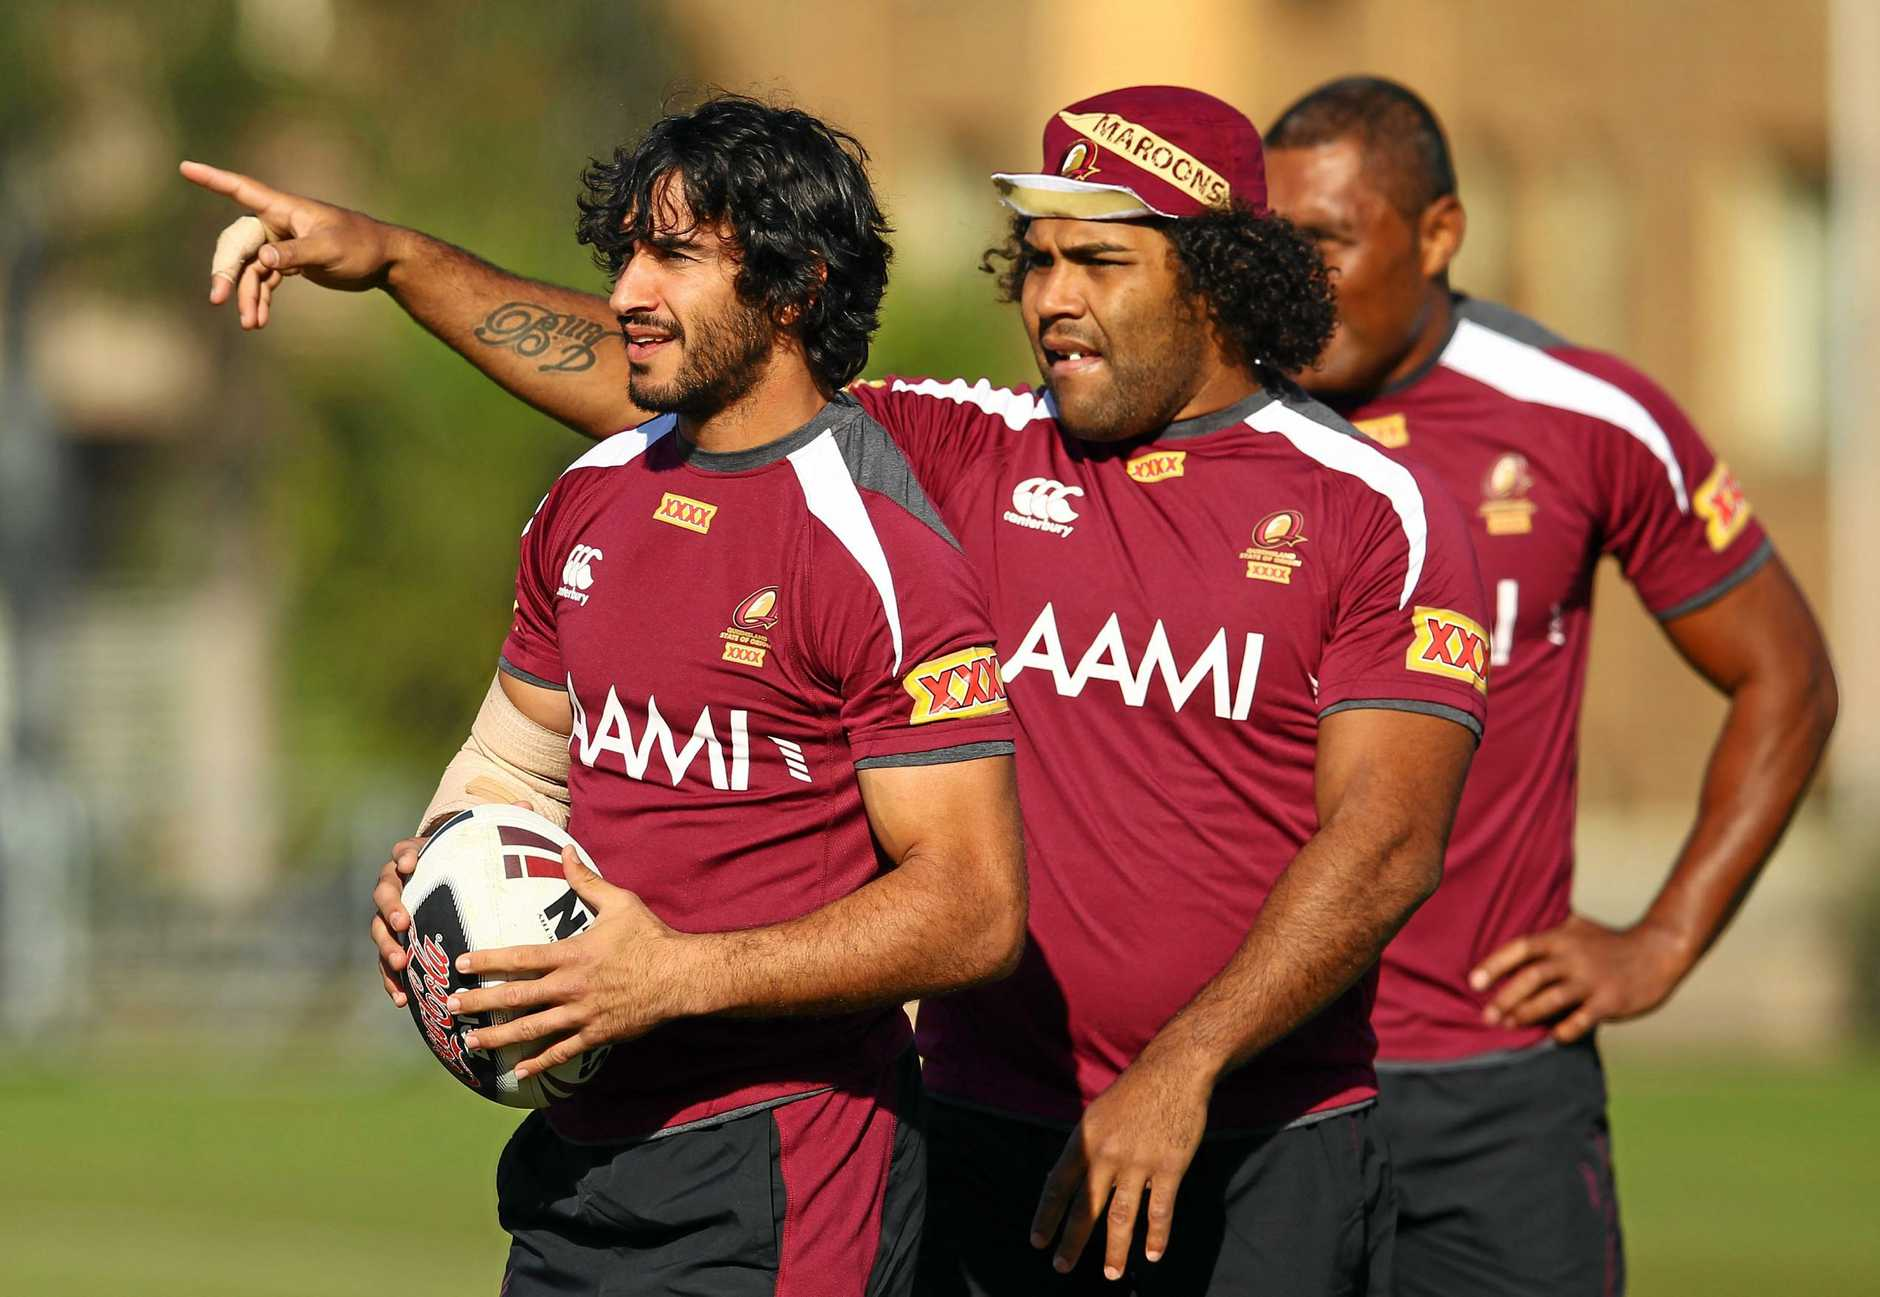 Johnathan Thurston and Sam Thaiday look on during a Queensland State of Origin training session in Melbourne in 2012. Picture: Robert Cianflone/Getty Images